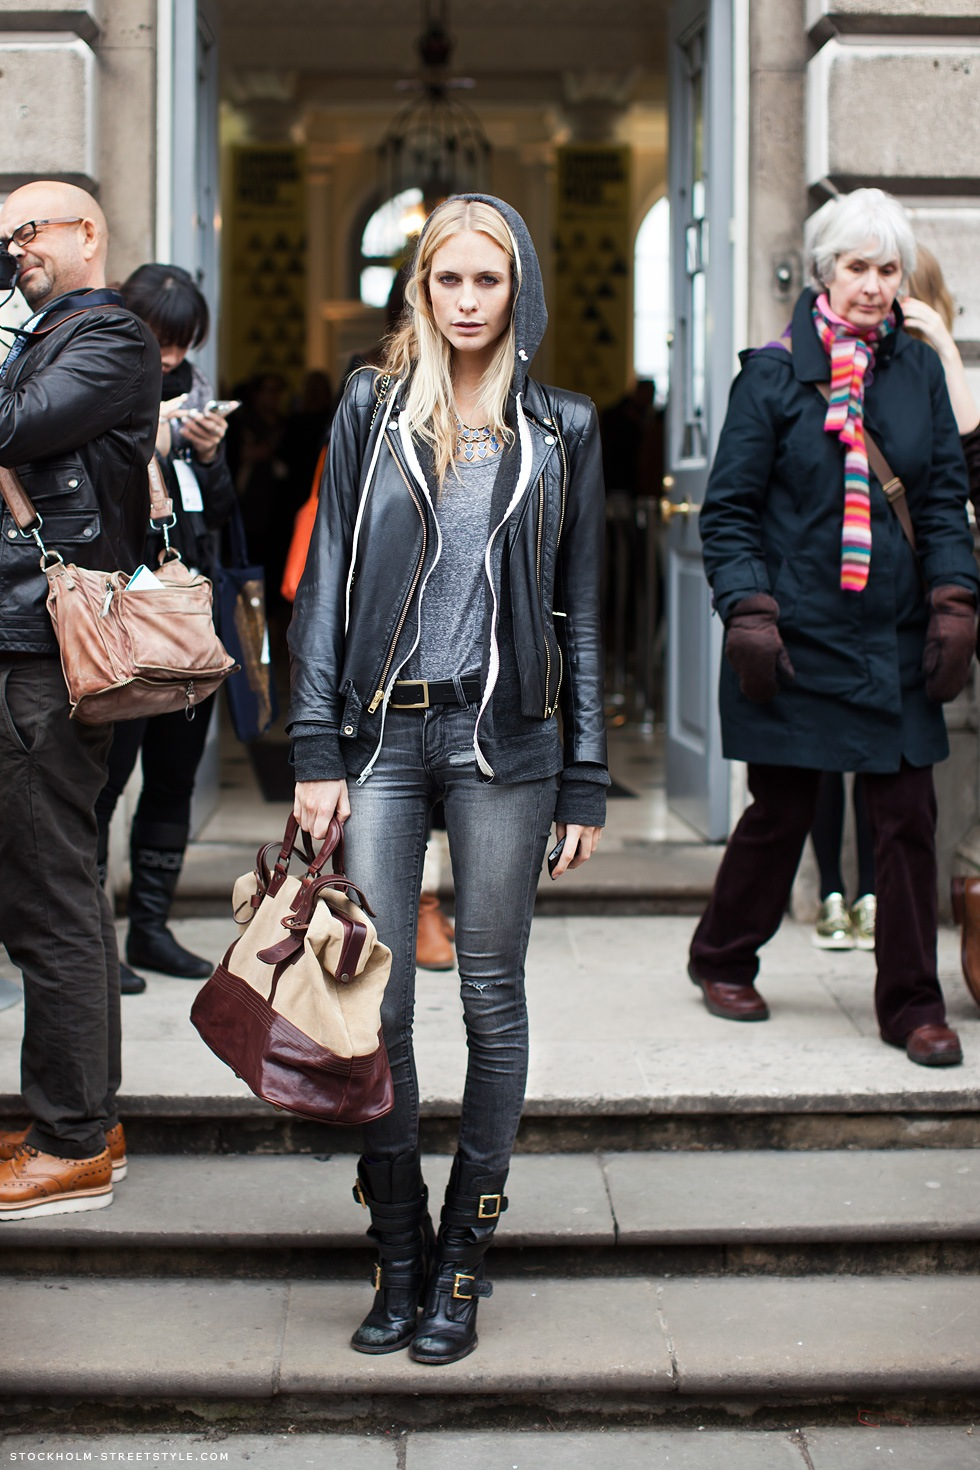 Poppy Delvigne Perfect Street Style Out Via Stockholm Street Style